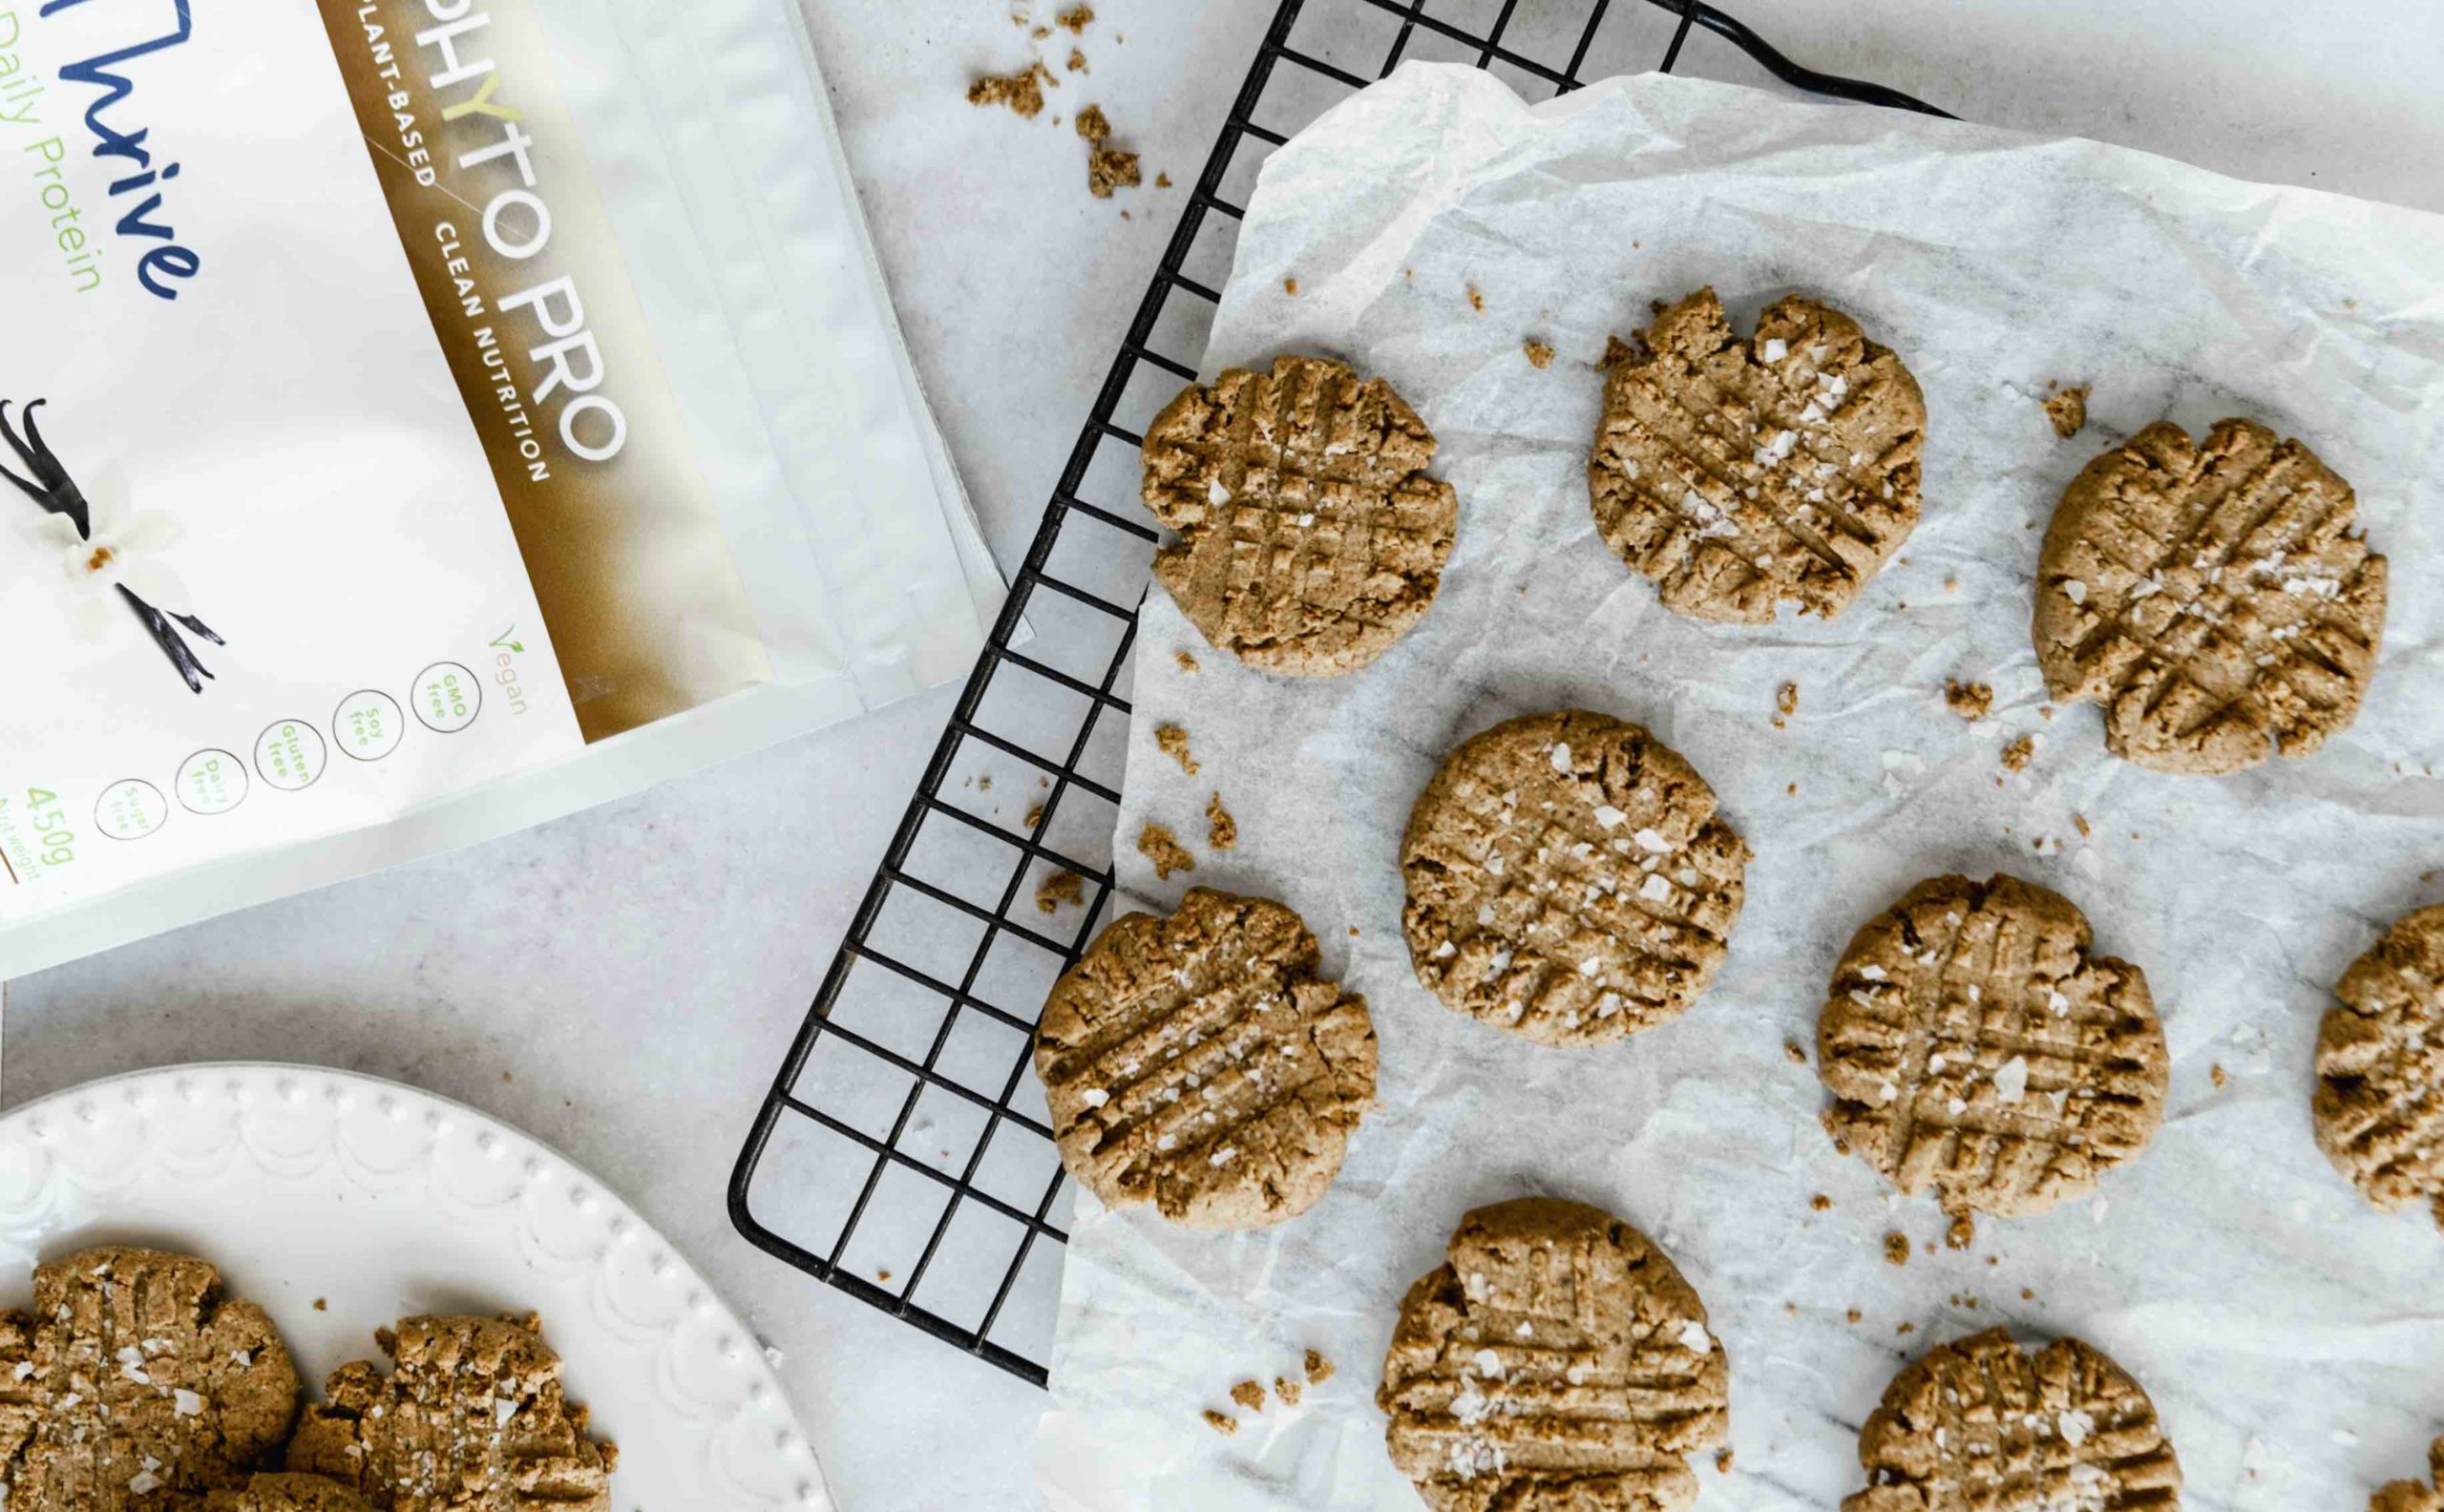 Phyto Pro Salted Macaramel Protein Cookies